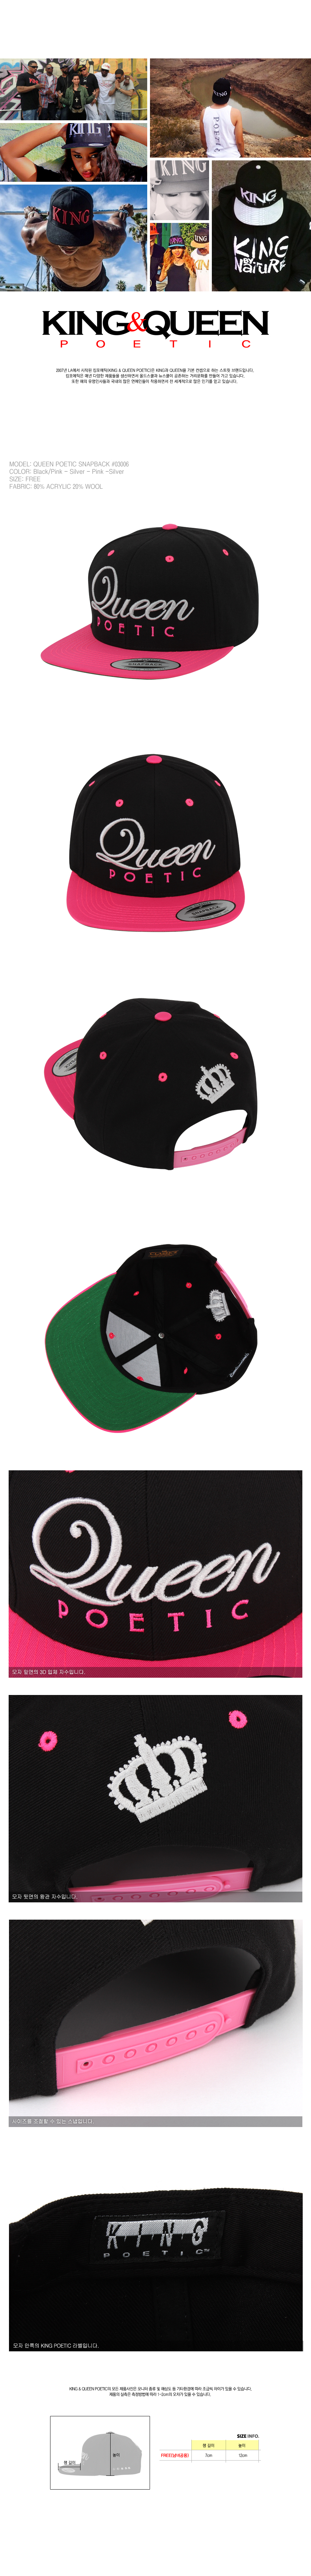 [ KINGPOETIC ] [KINGPOETIC] QUEEN POETIC SNAPBACK 03006